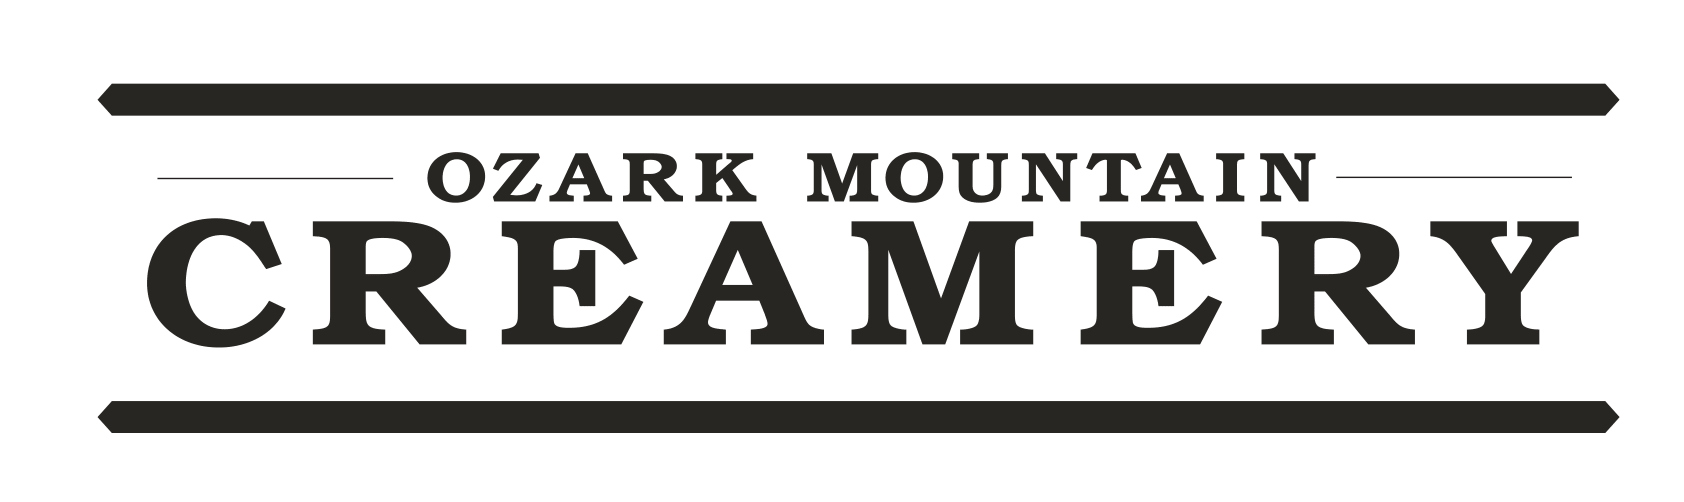 Ozark Mountain Creamery